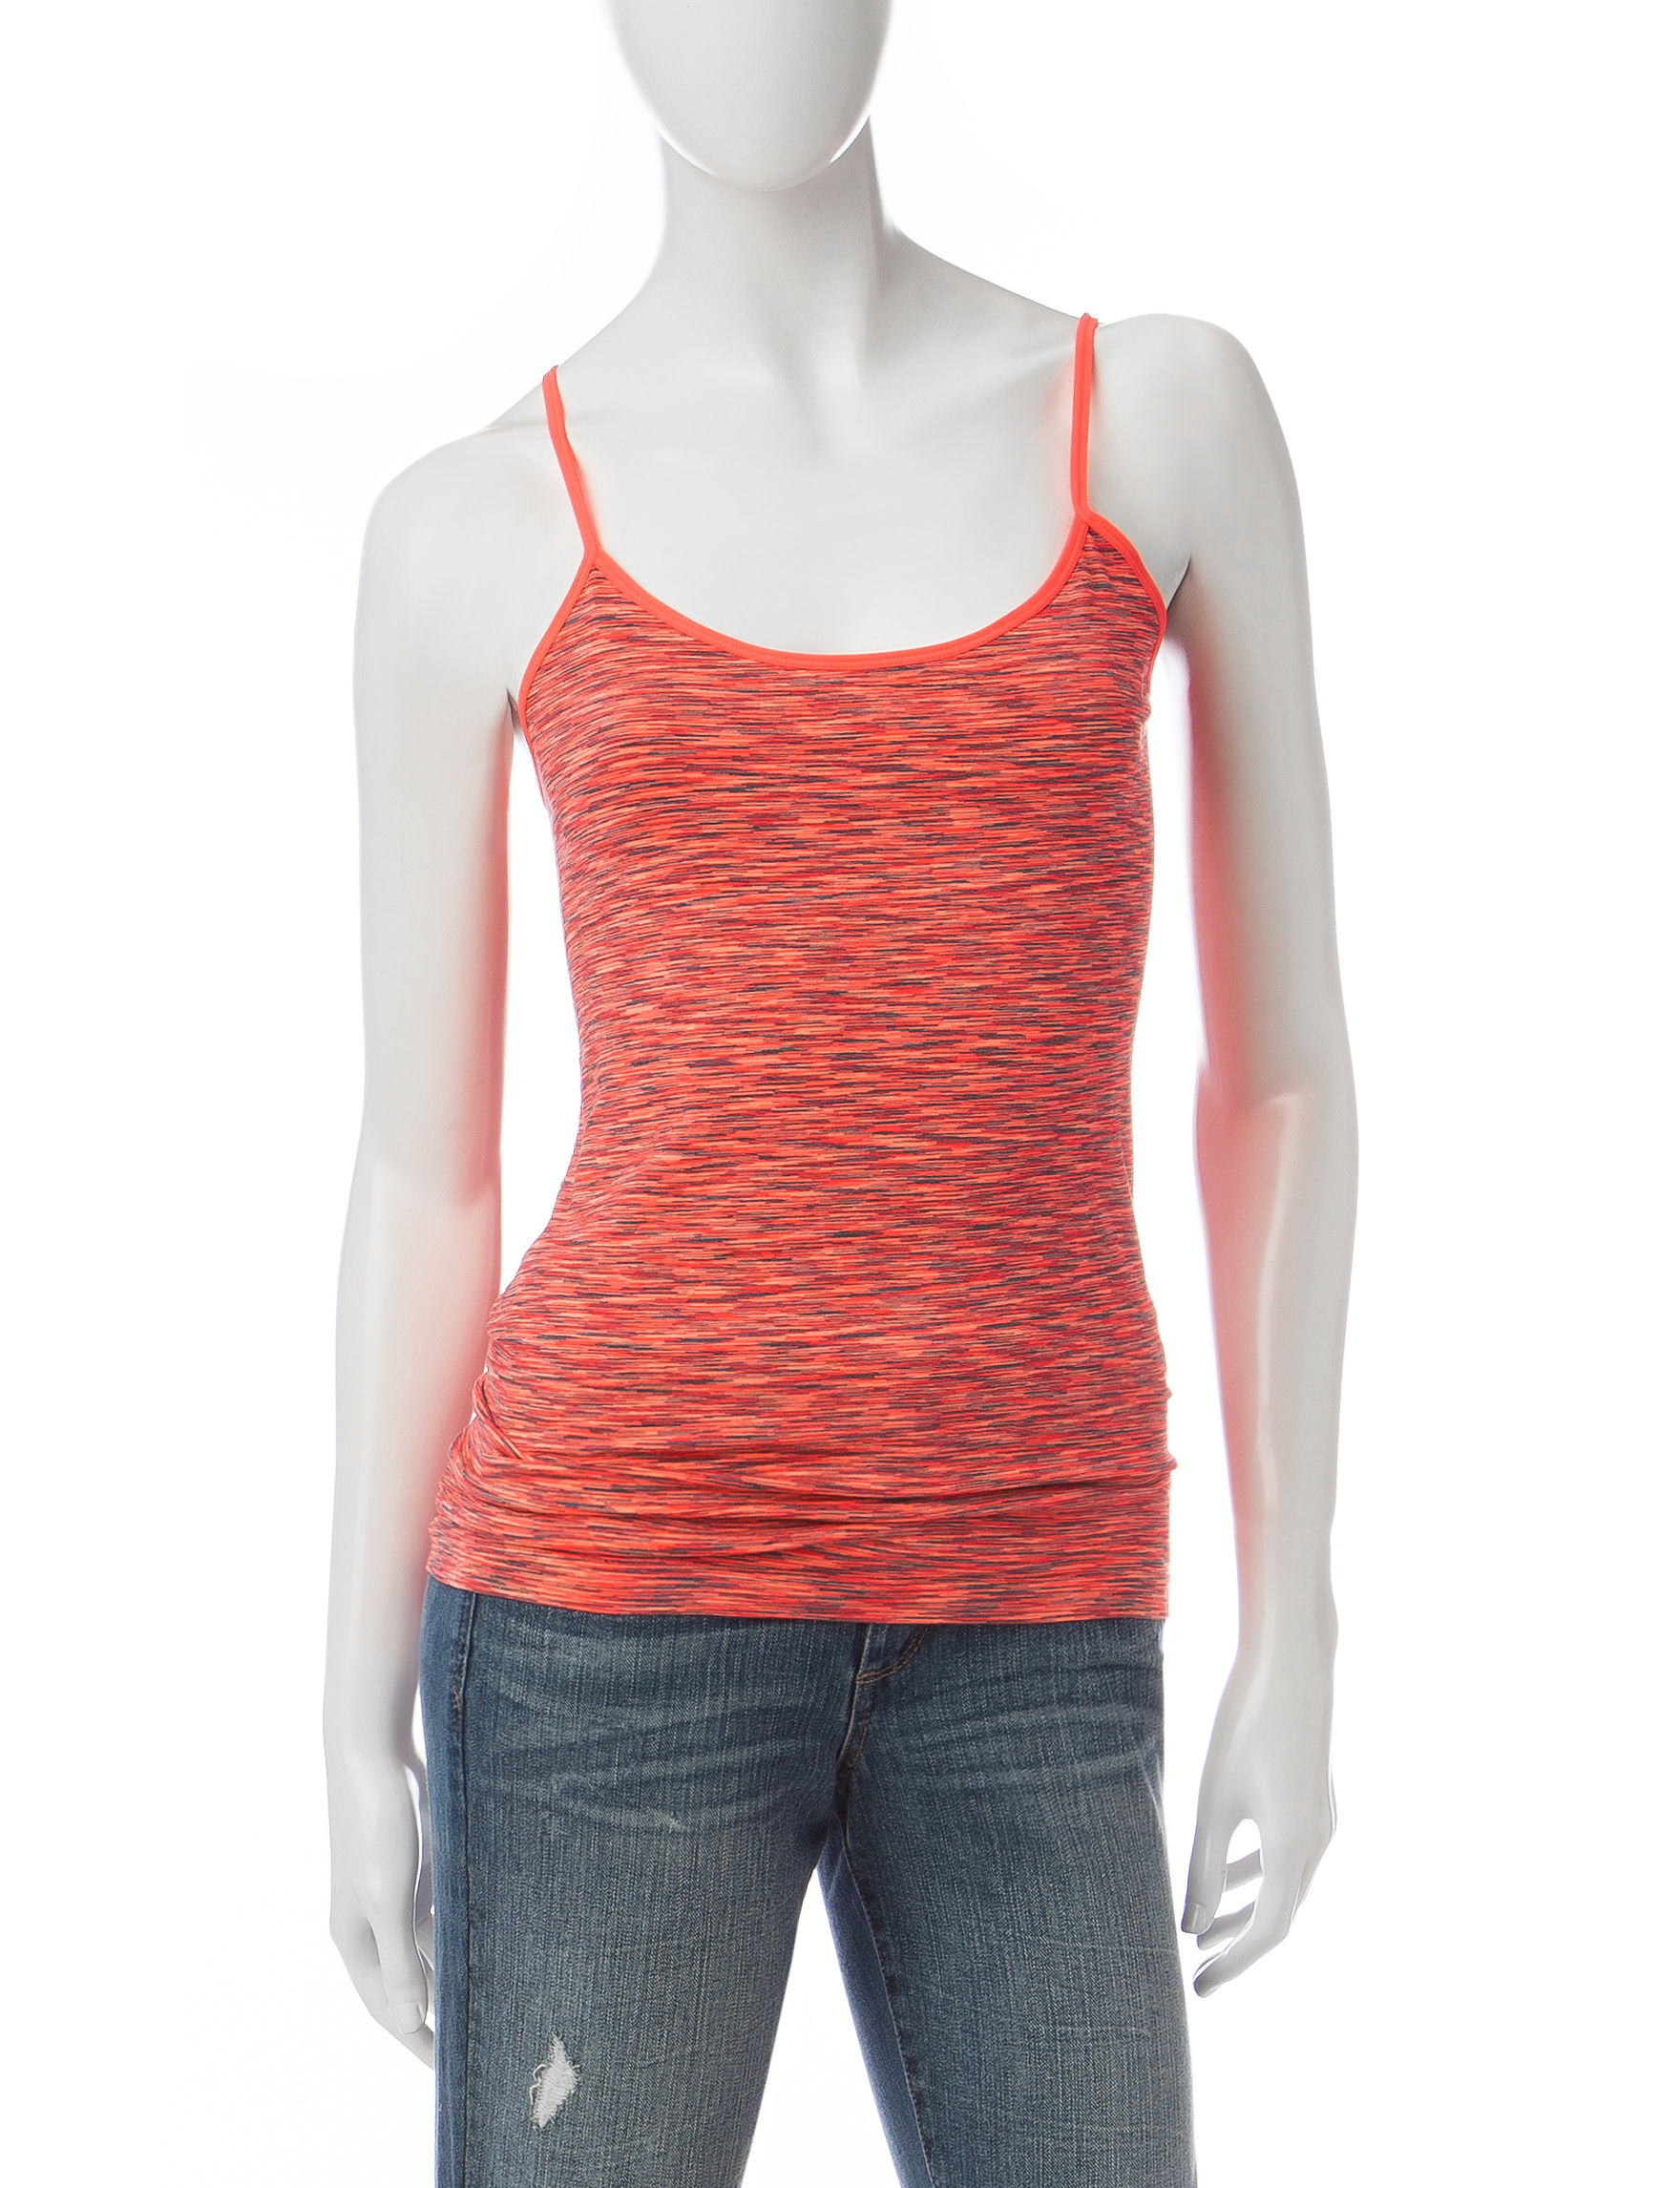 Wishful Park Coral Camisoles & Tanks